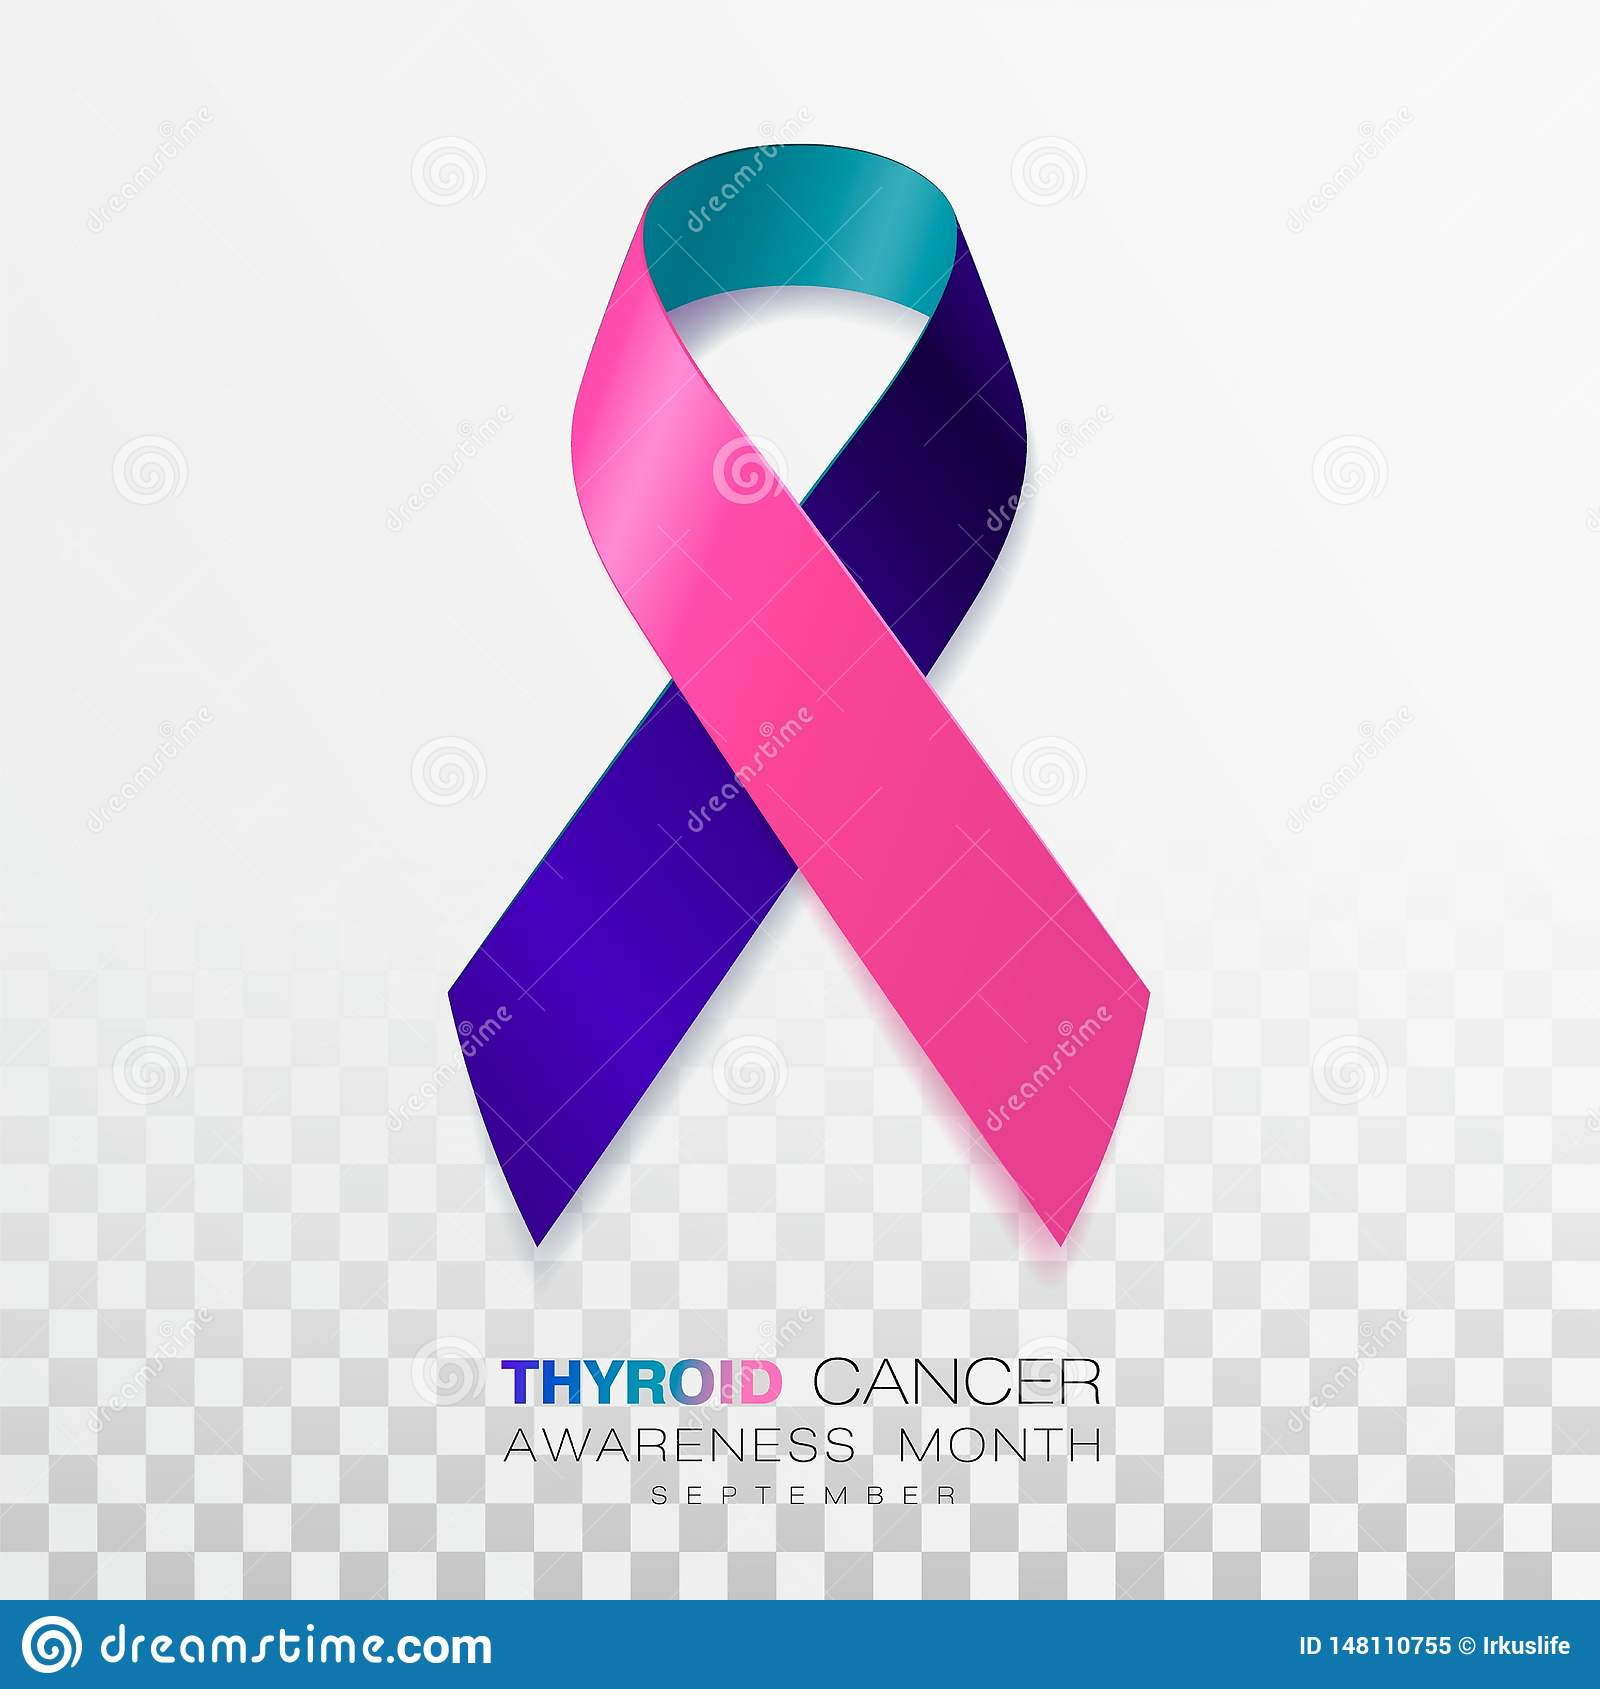 Thyroid Cancer Awareness Month Teal And Pink And Blue Color Ribbon Isolated On Transparent Background Vector Design Stock Vector Illustration Of Illness Care